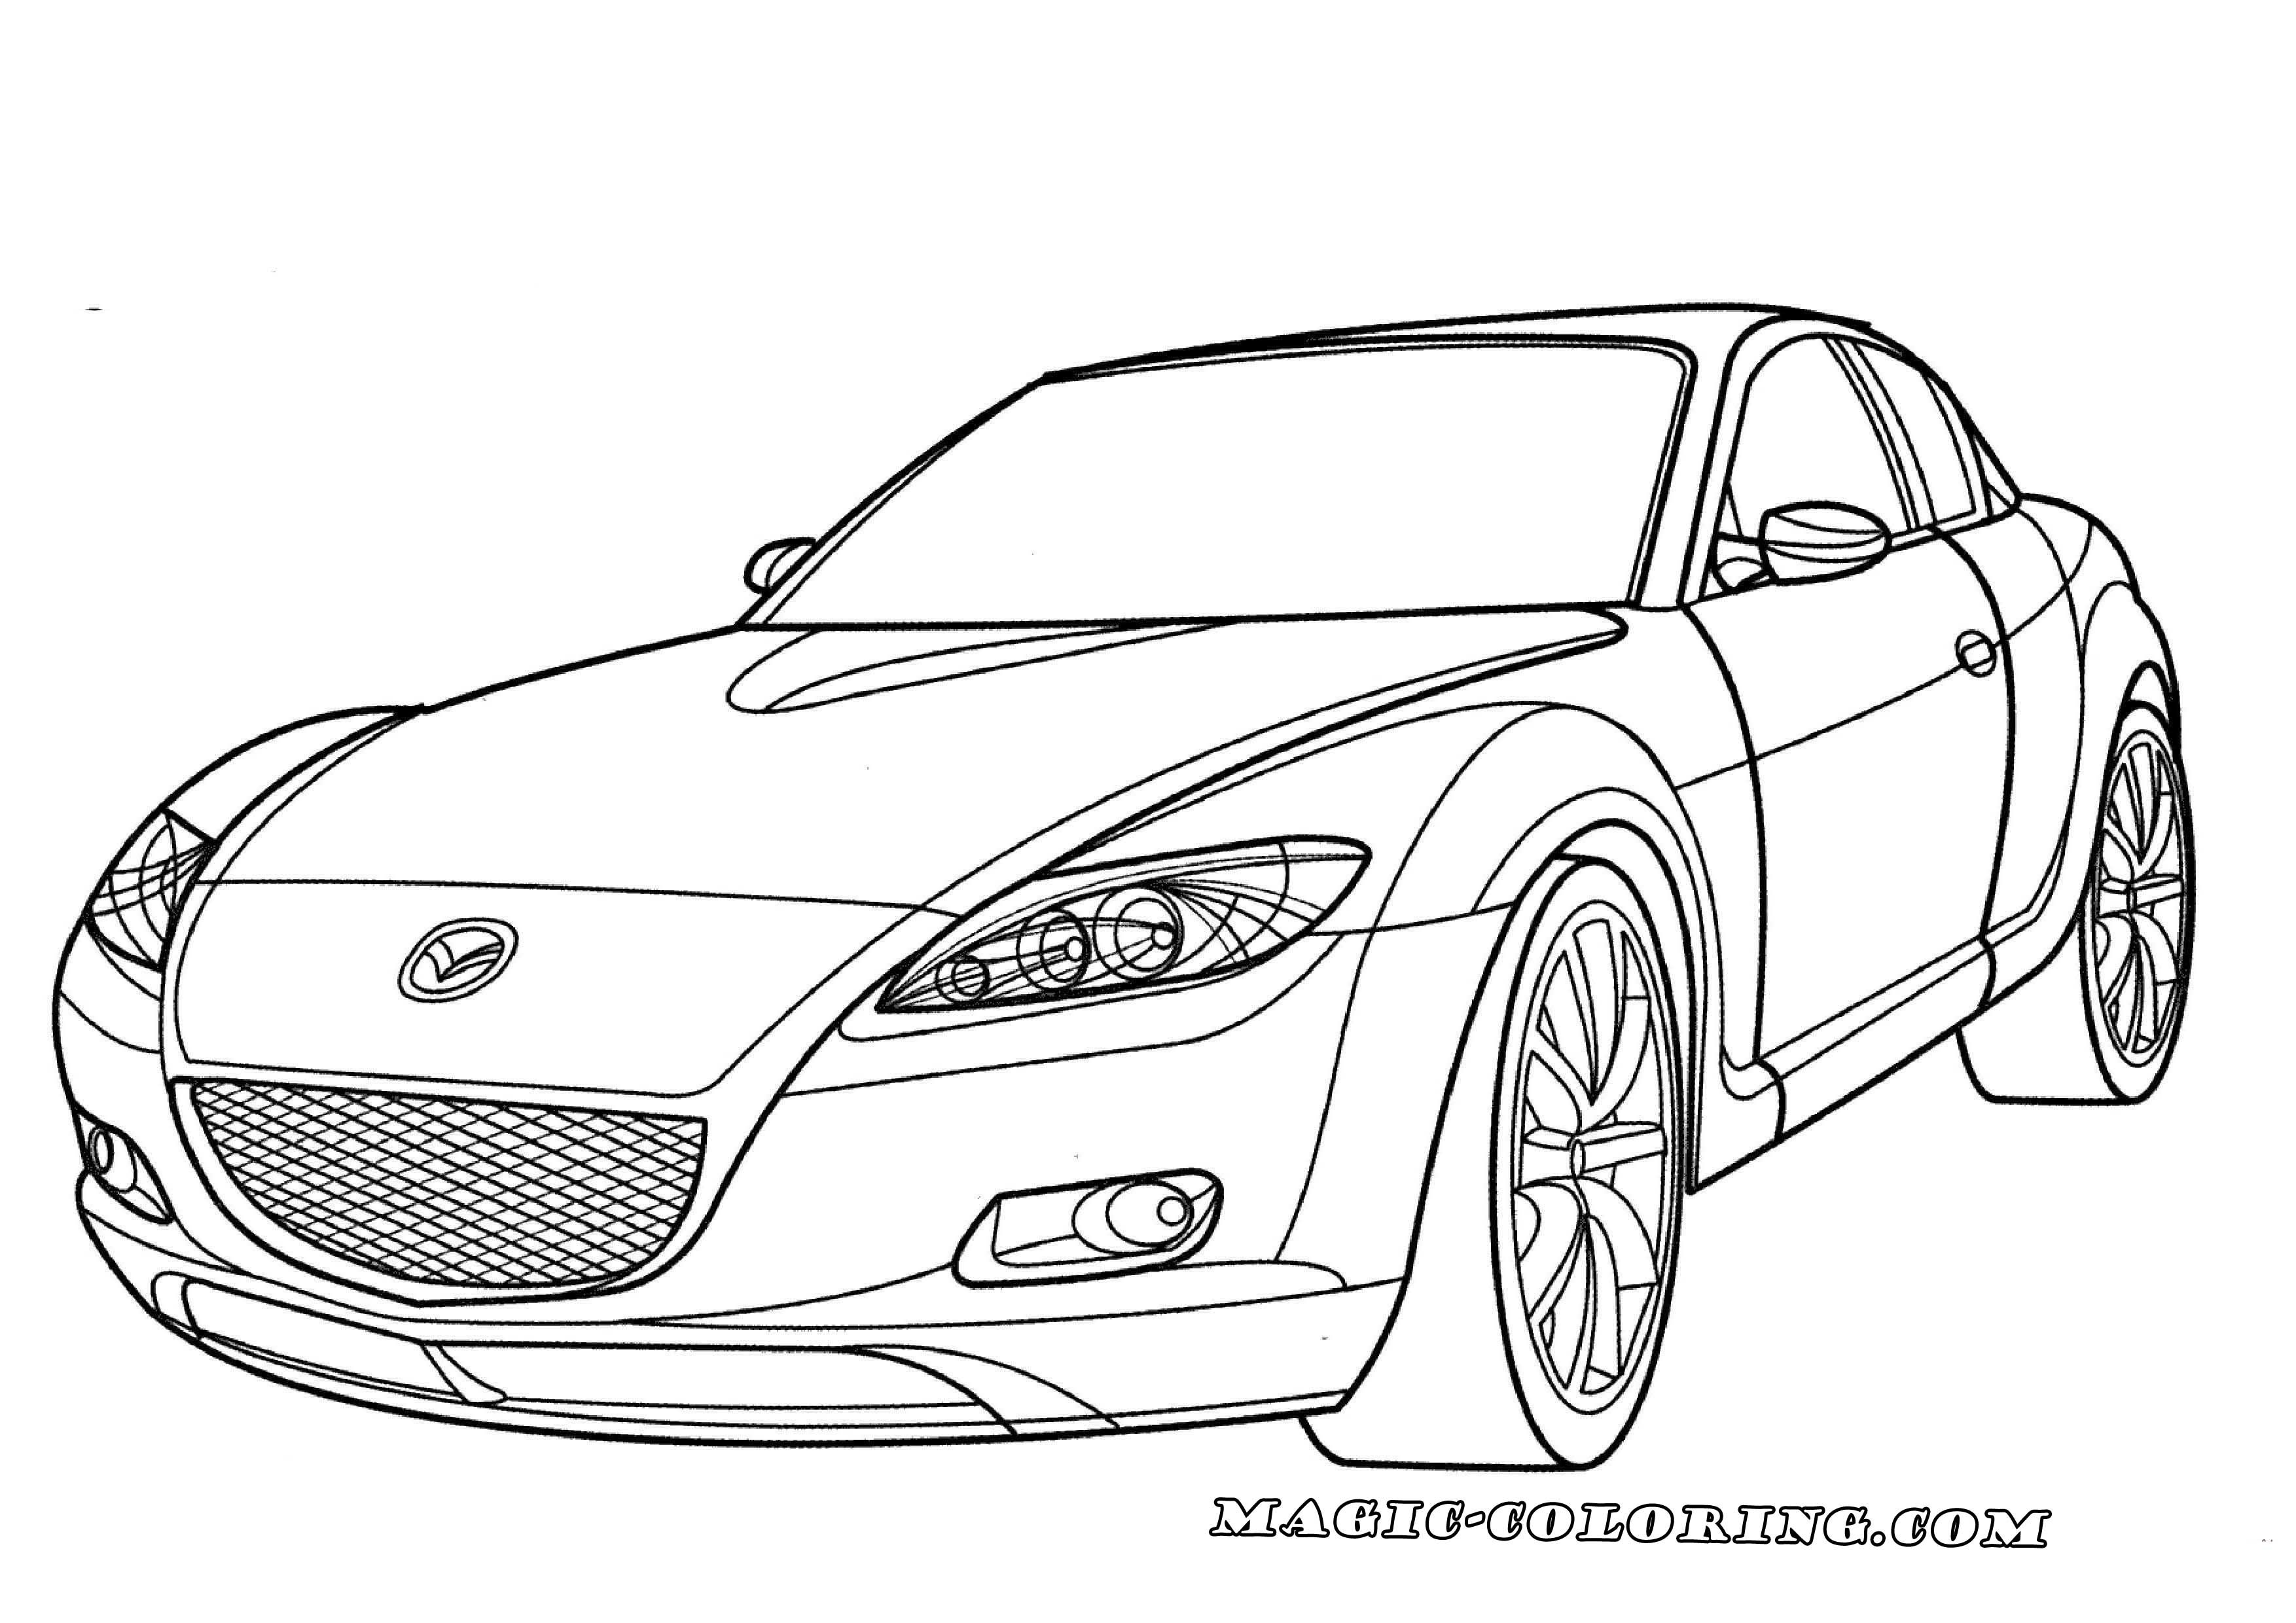 Mazda Rx 8 Coloring Page Sports Coloring Pages Coloring Pages Mazda